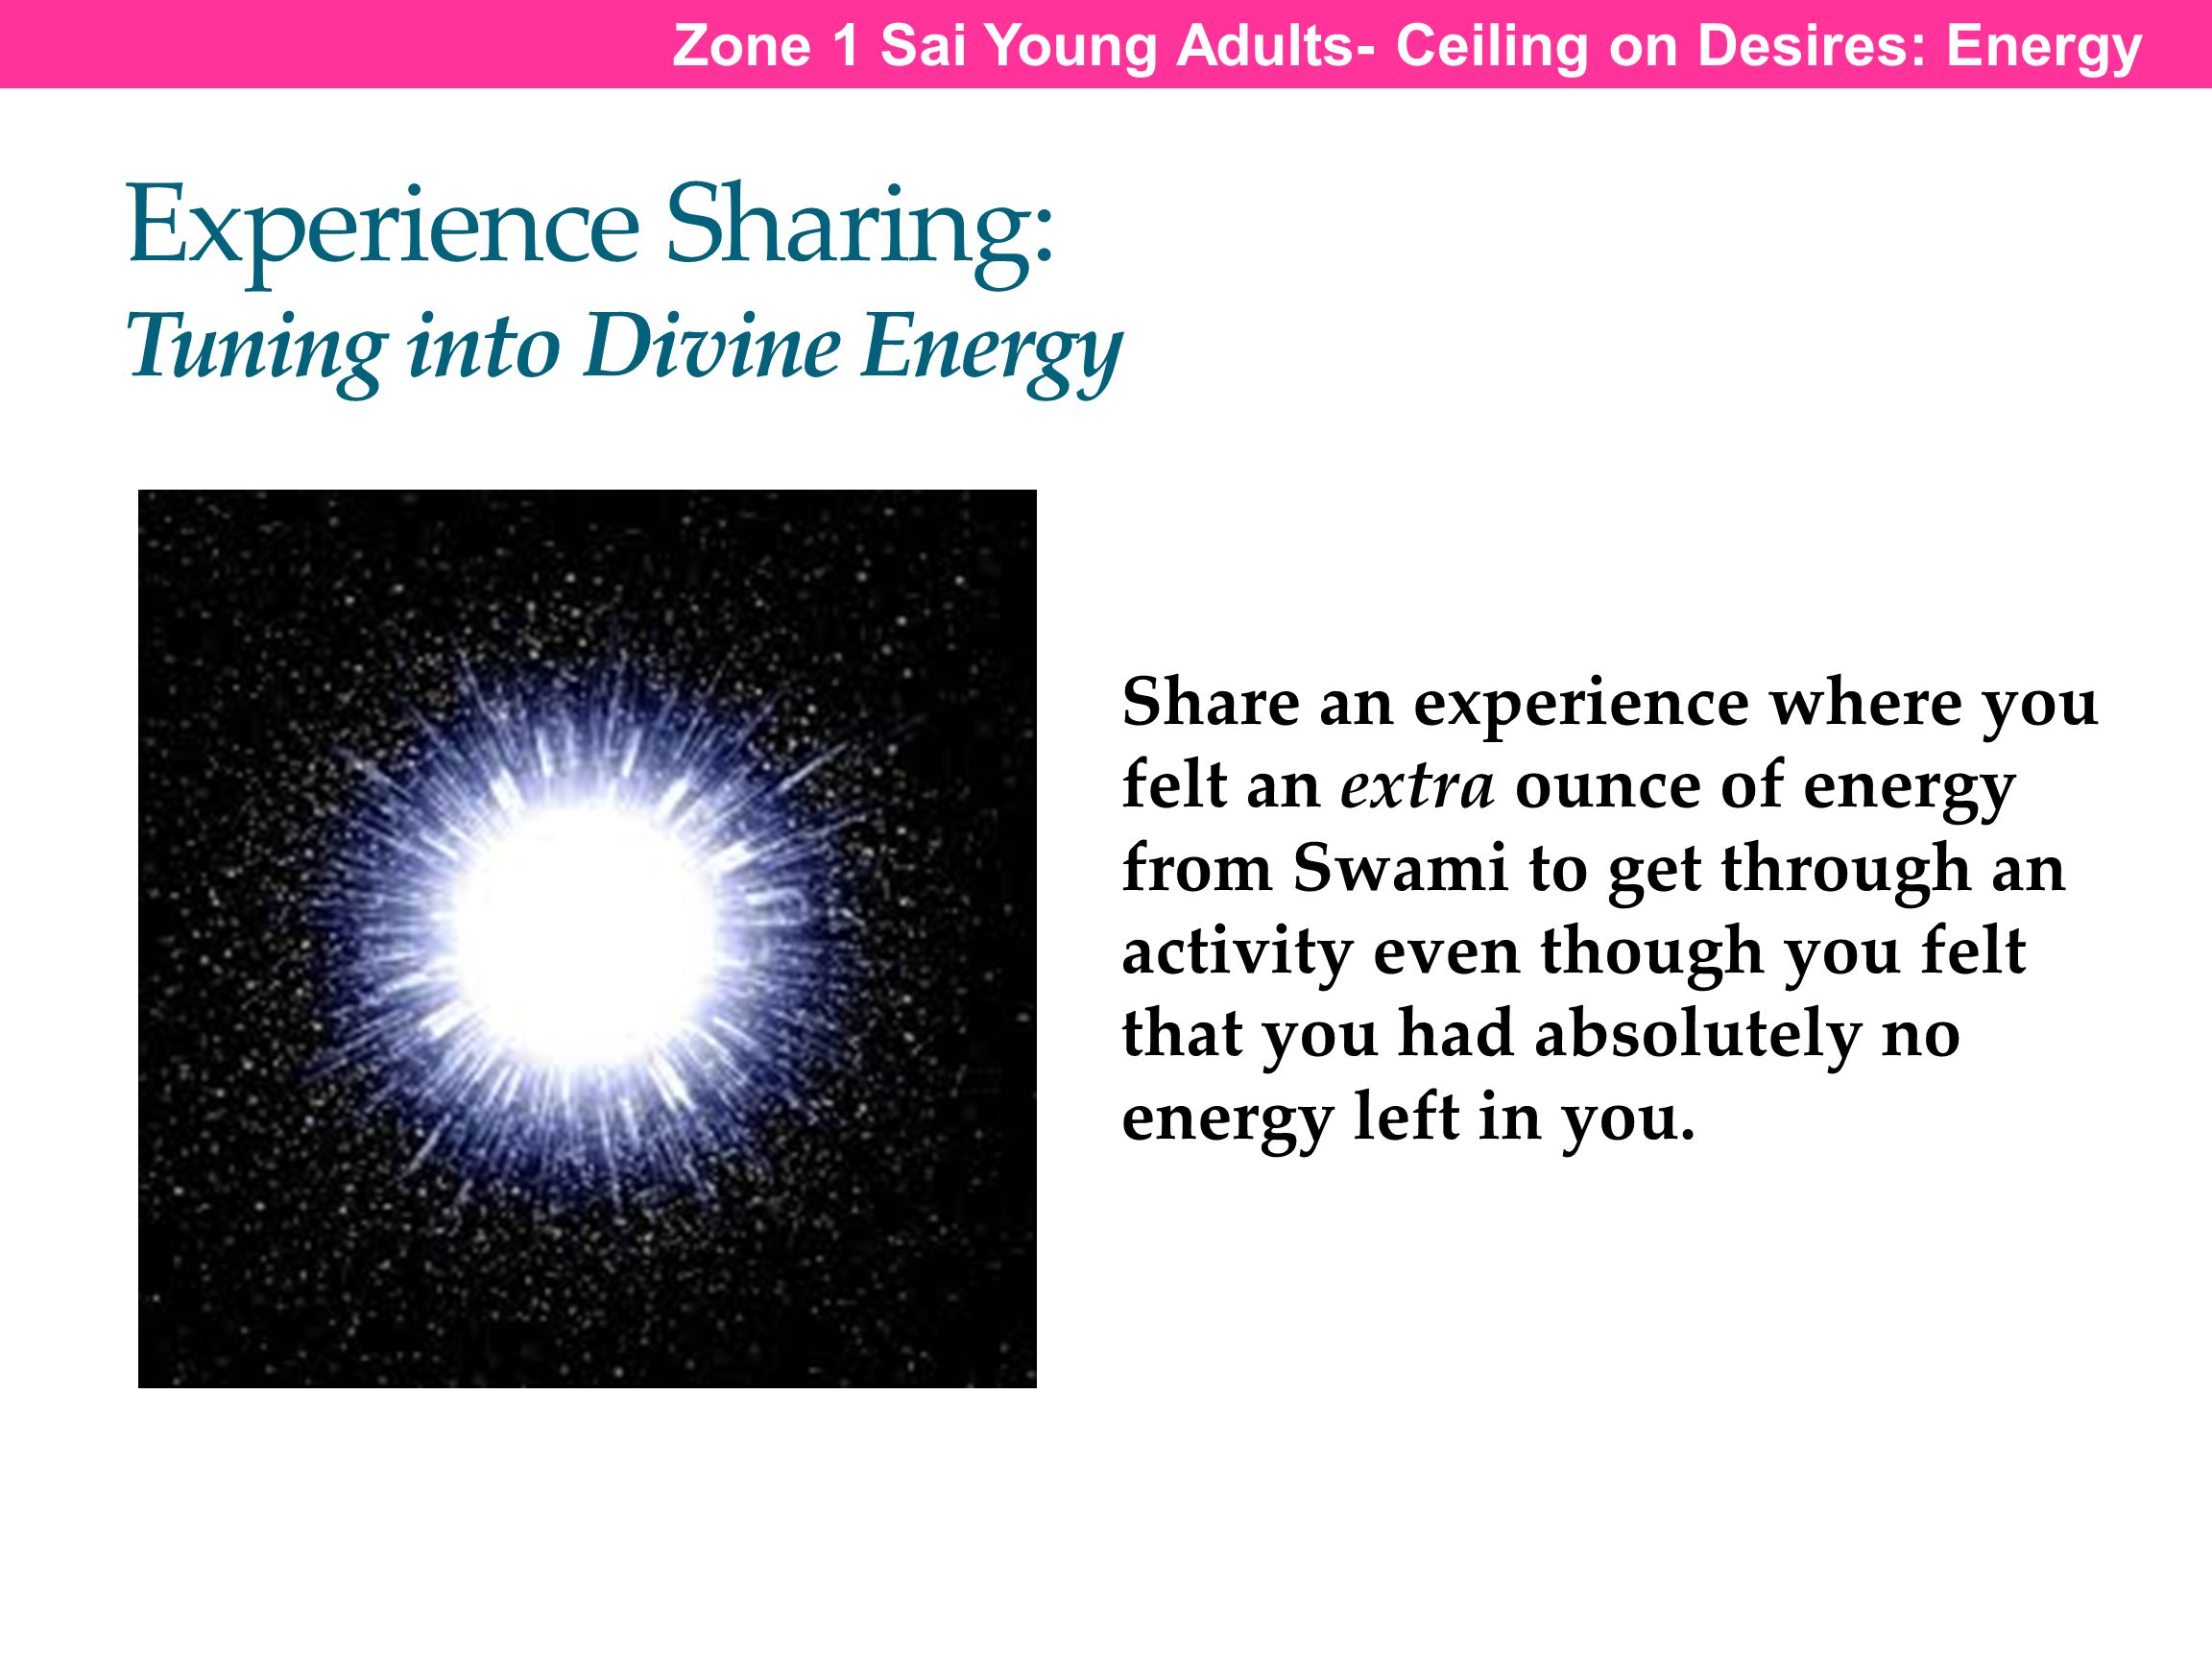 Experience Sharing: Tuning into Divine Energy